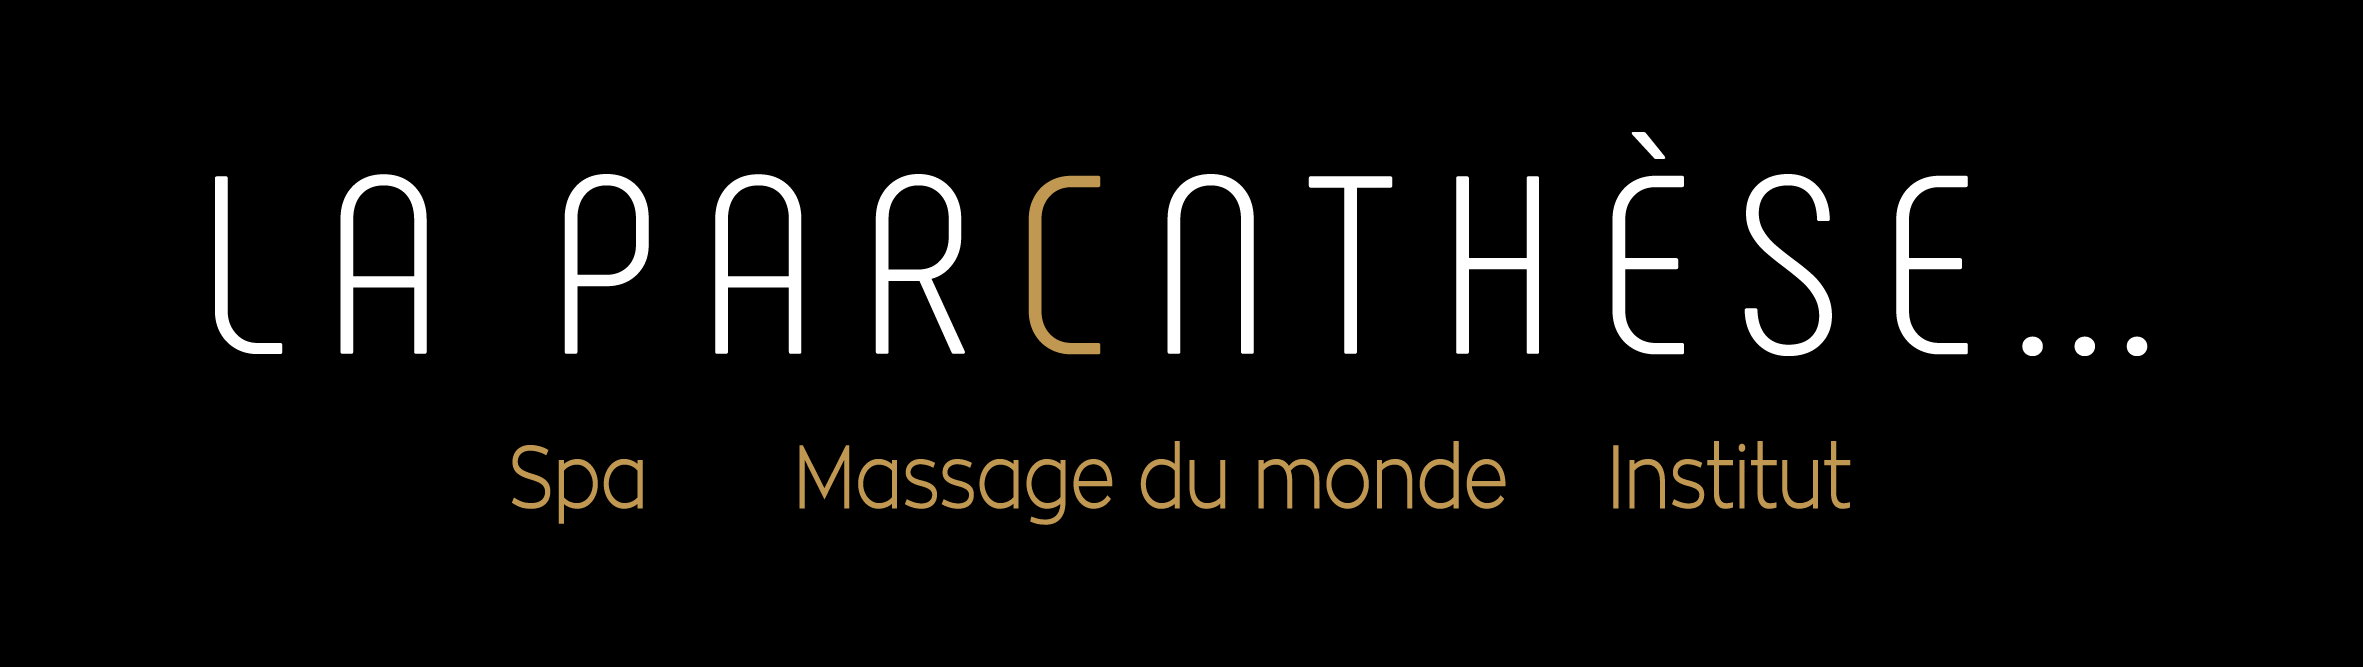 La Parenthèse – Spa, Massages du Monde,  Institut